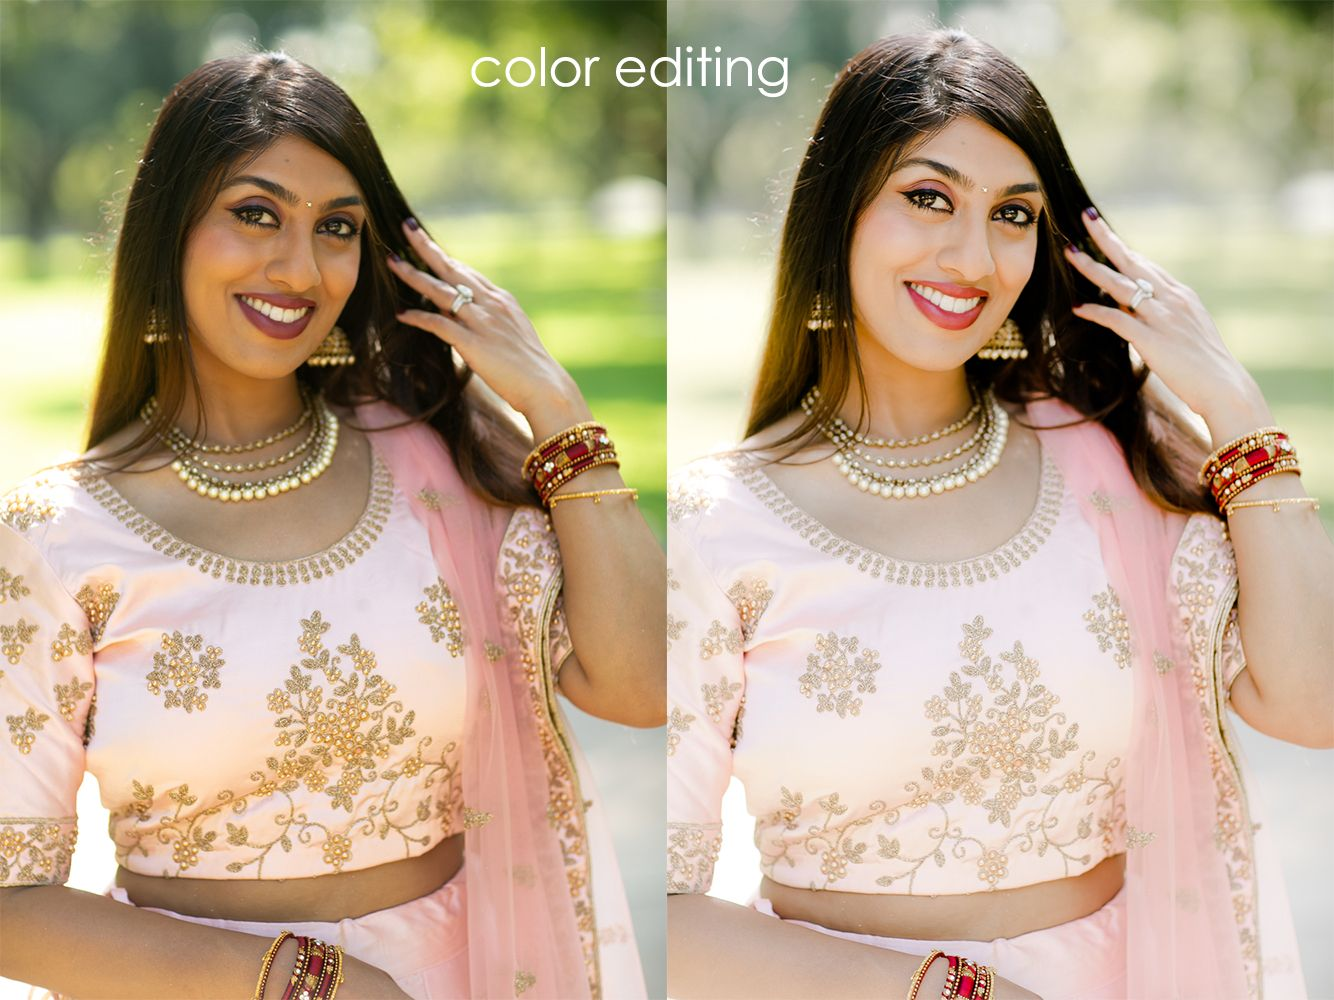 color editing for wedding photographers